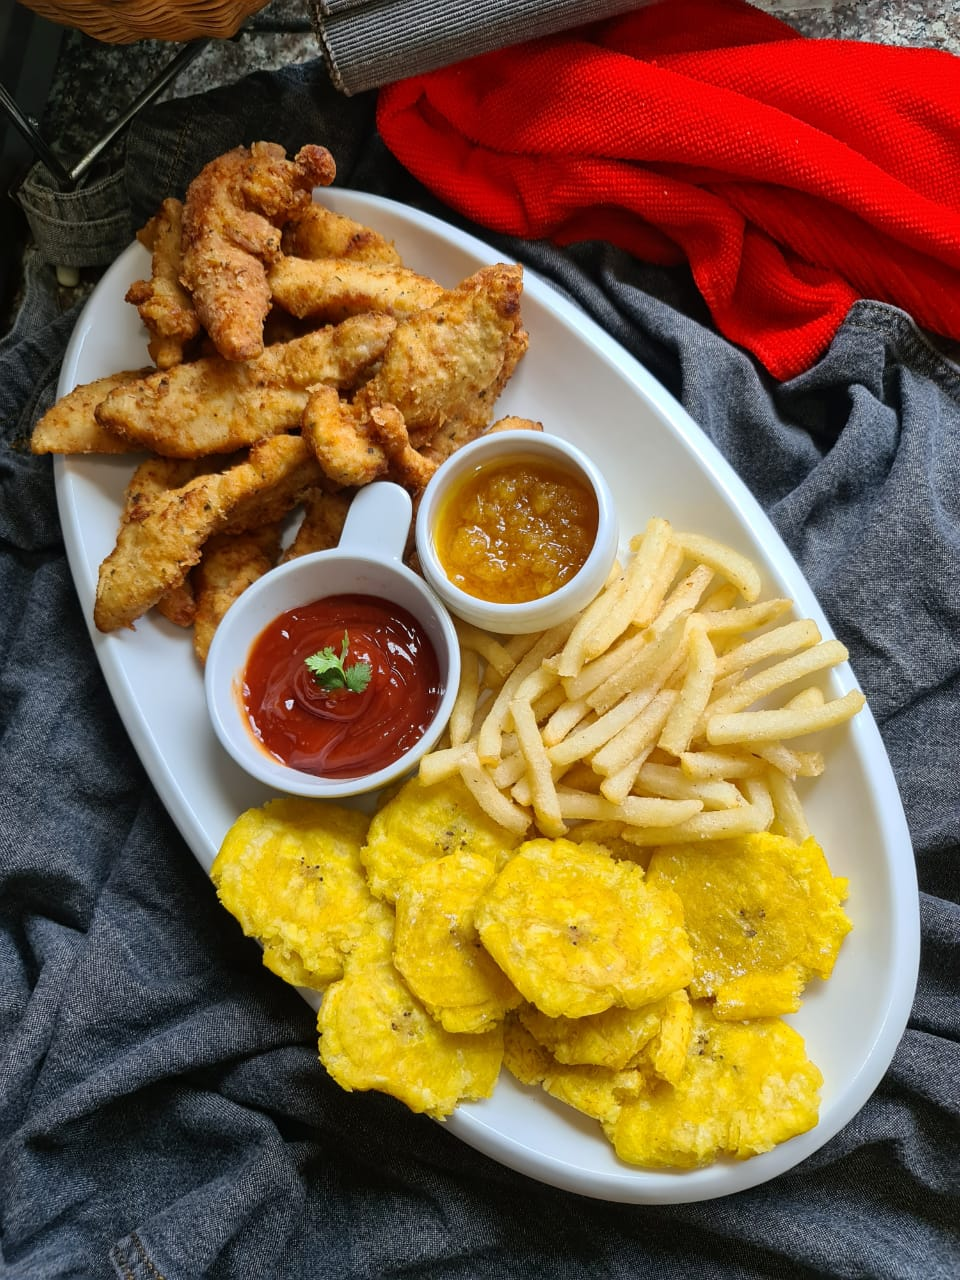 Dominican fried chicken